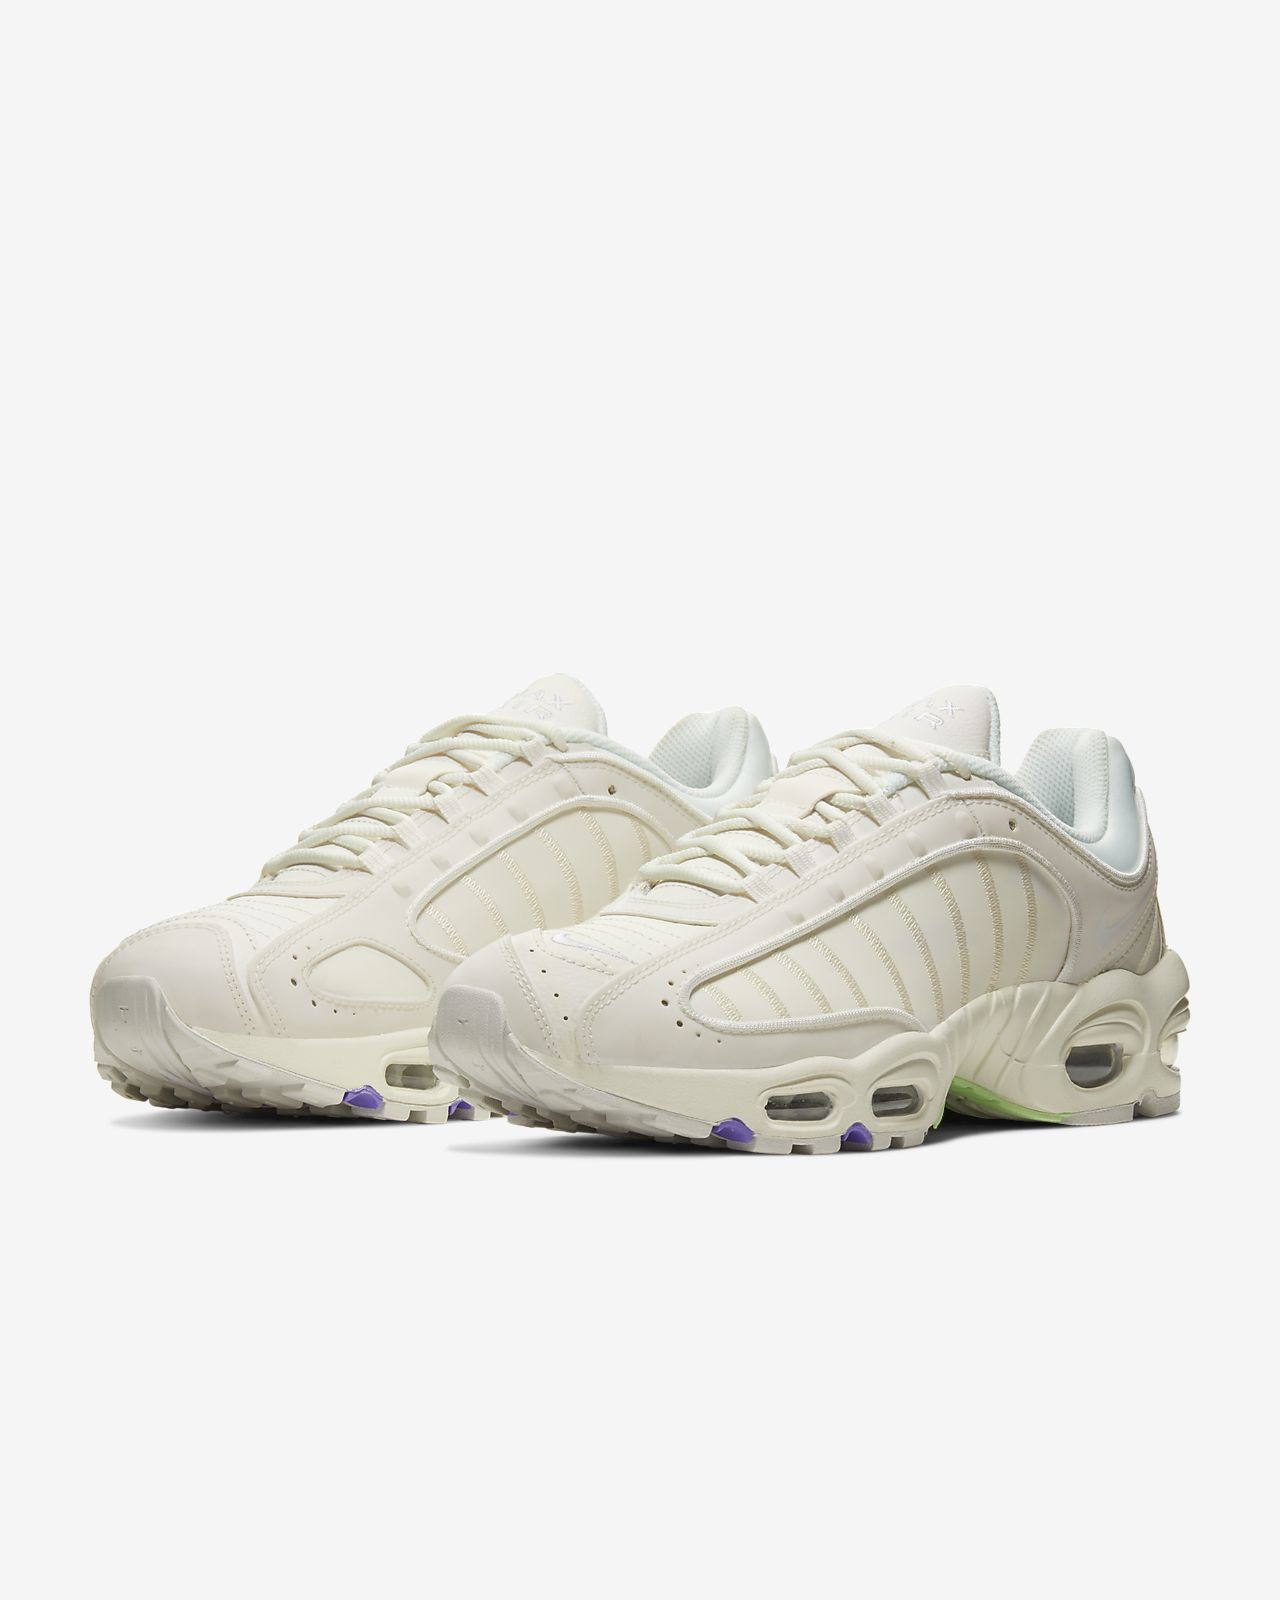 Chaussure Nike Air Max Tailwind 99 pour Homme